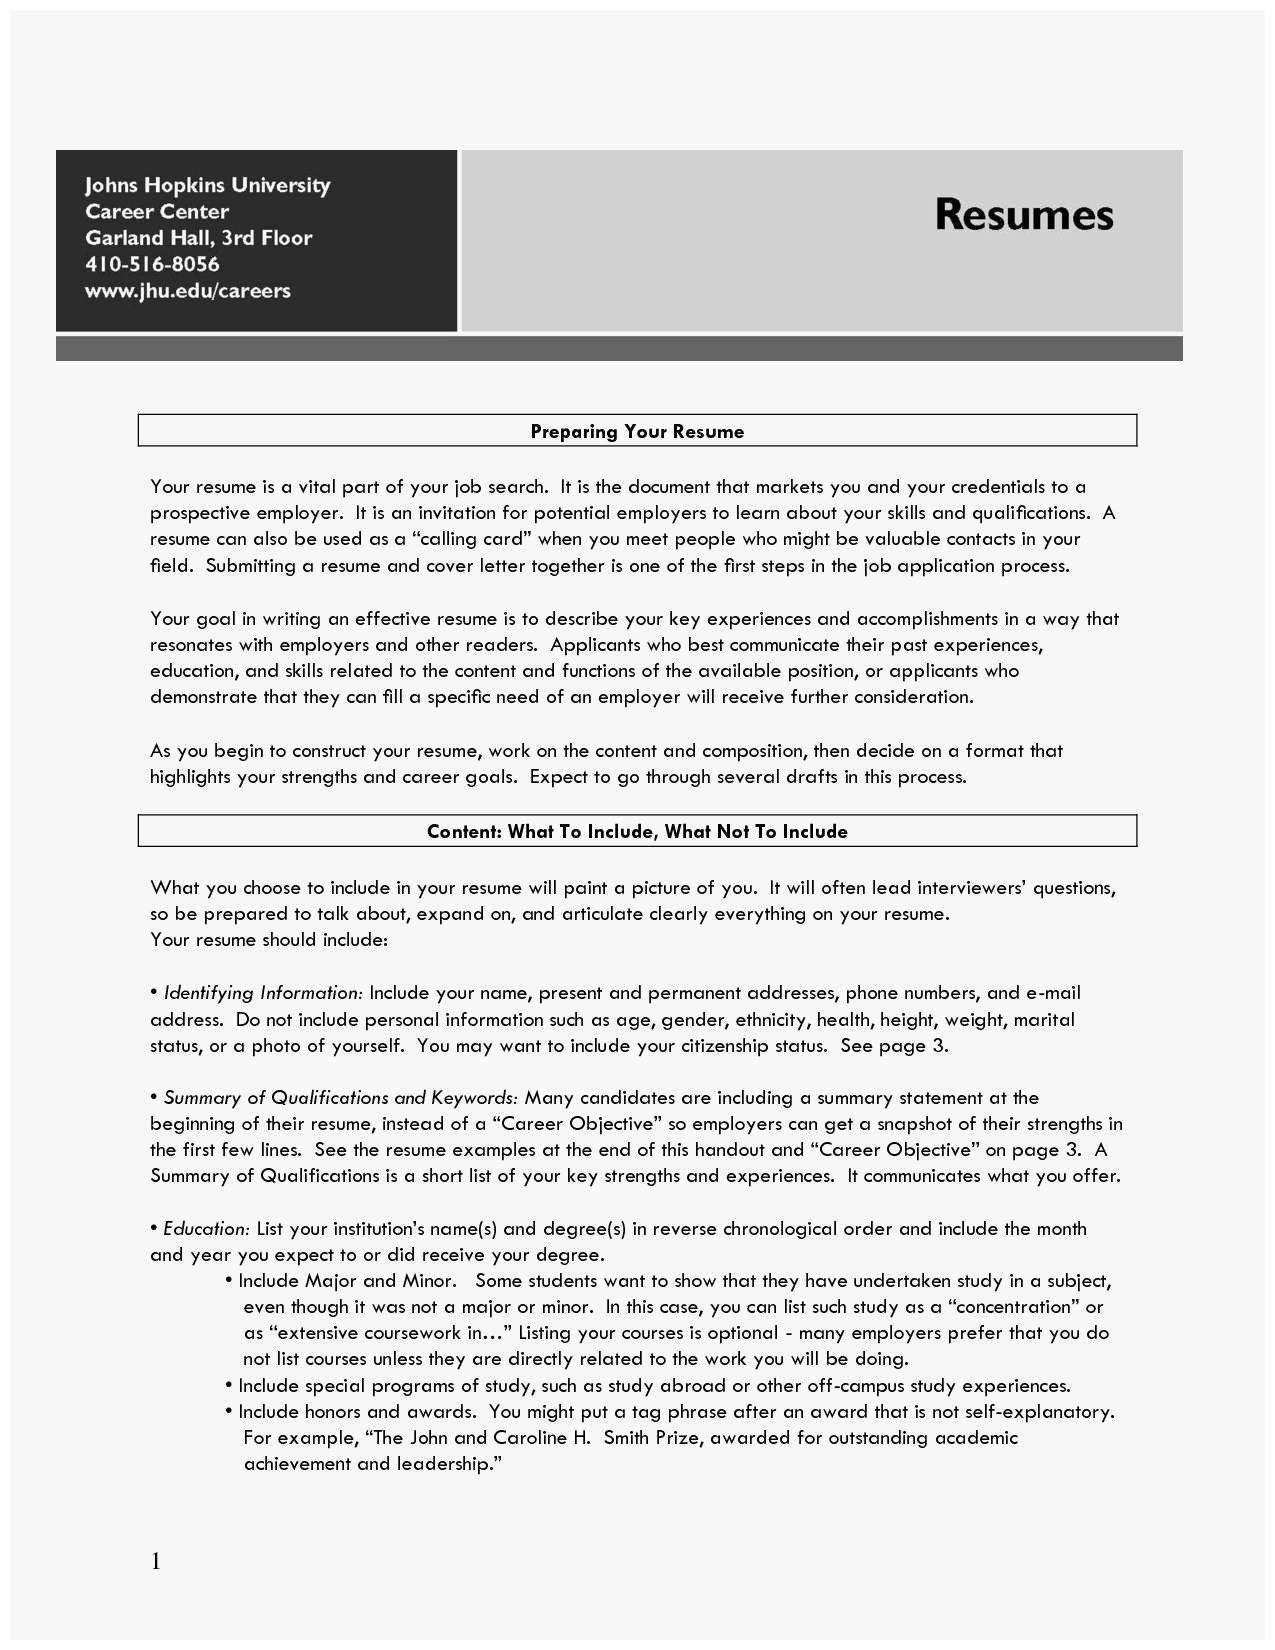 Uploading Resume To Indeed Unique Indeed Resume Search By Name Fresh How To Write A Cover In 2020 Download Resume Resume Basic Resume